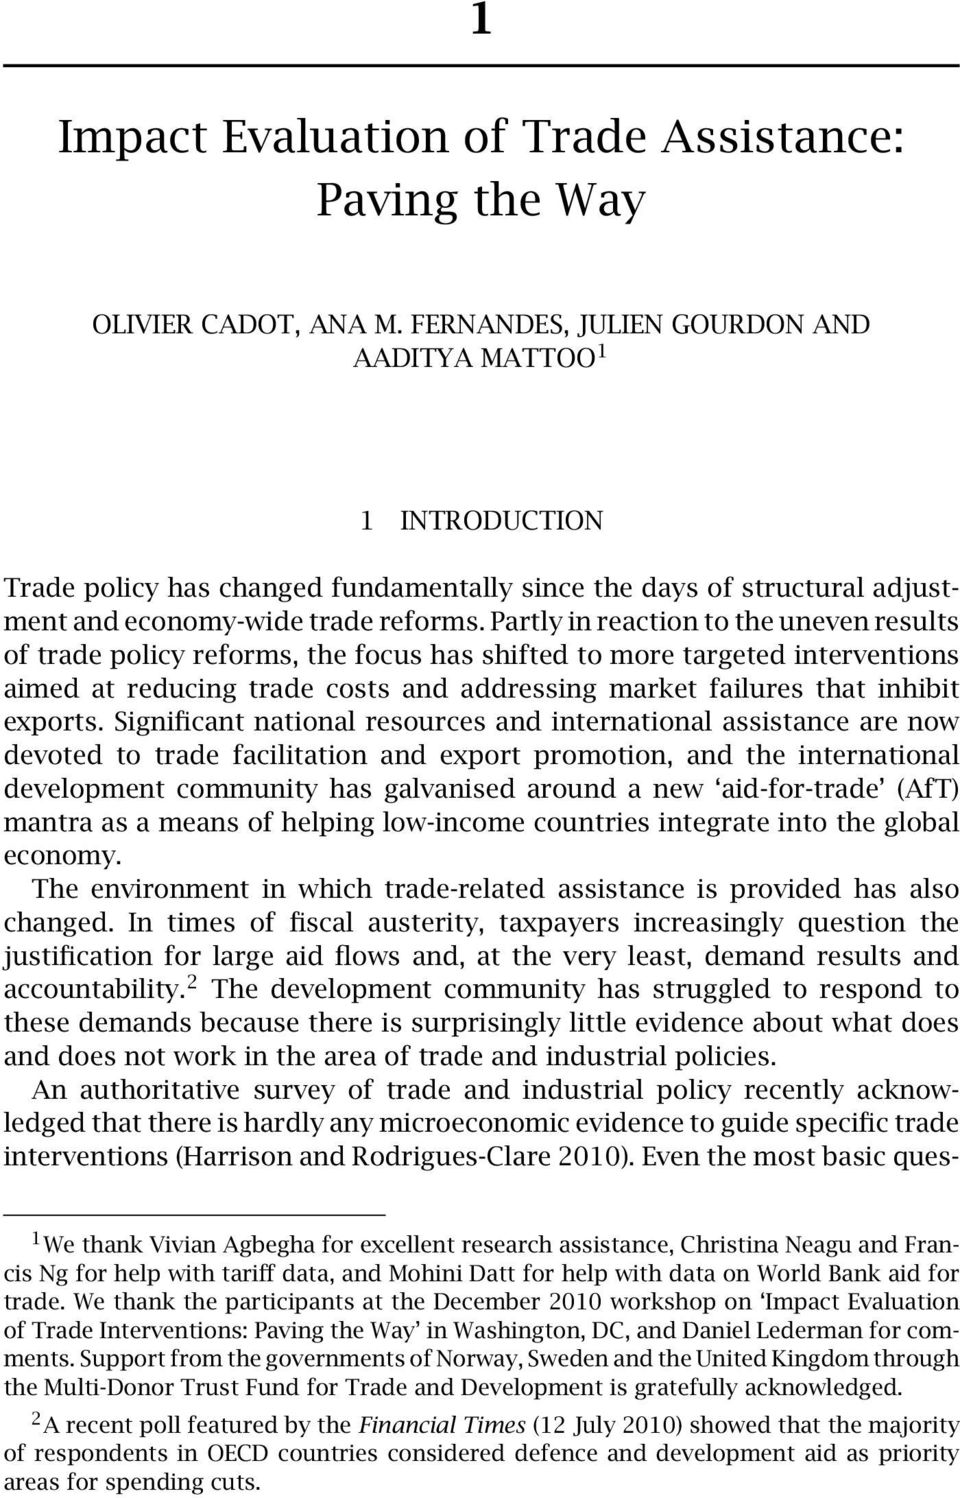 Partly in reaction to the uneven results of trade policy reforms, the focus has shifted to more targeted interventions aimed at reducing trade costs and addressing market failures that inhibit